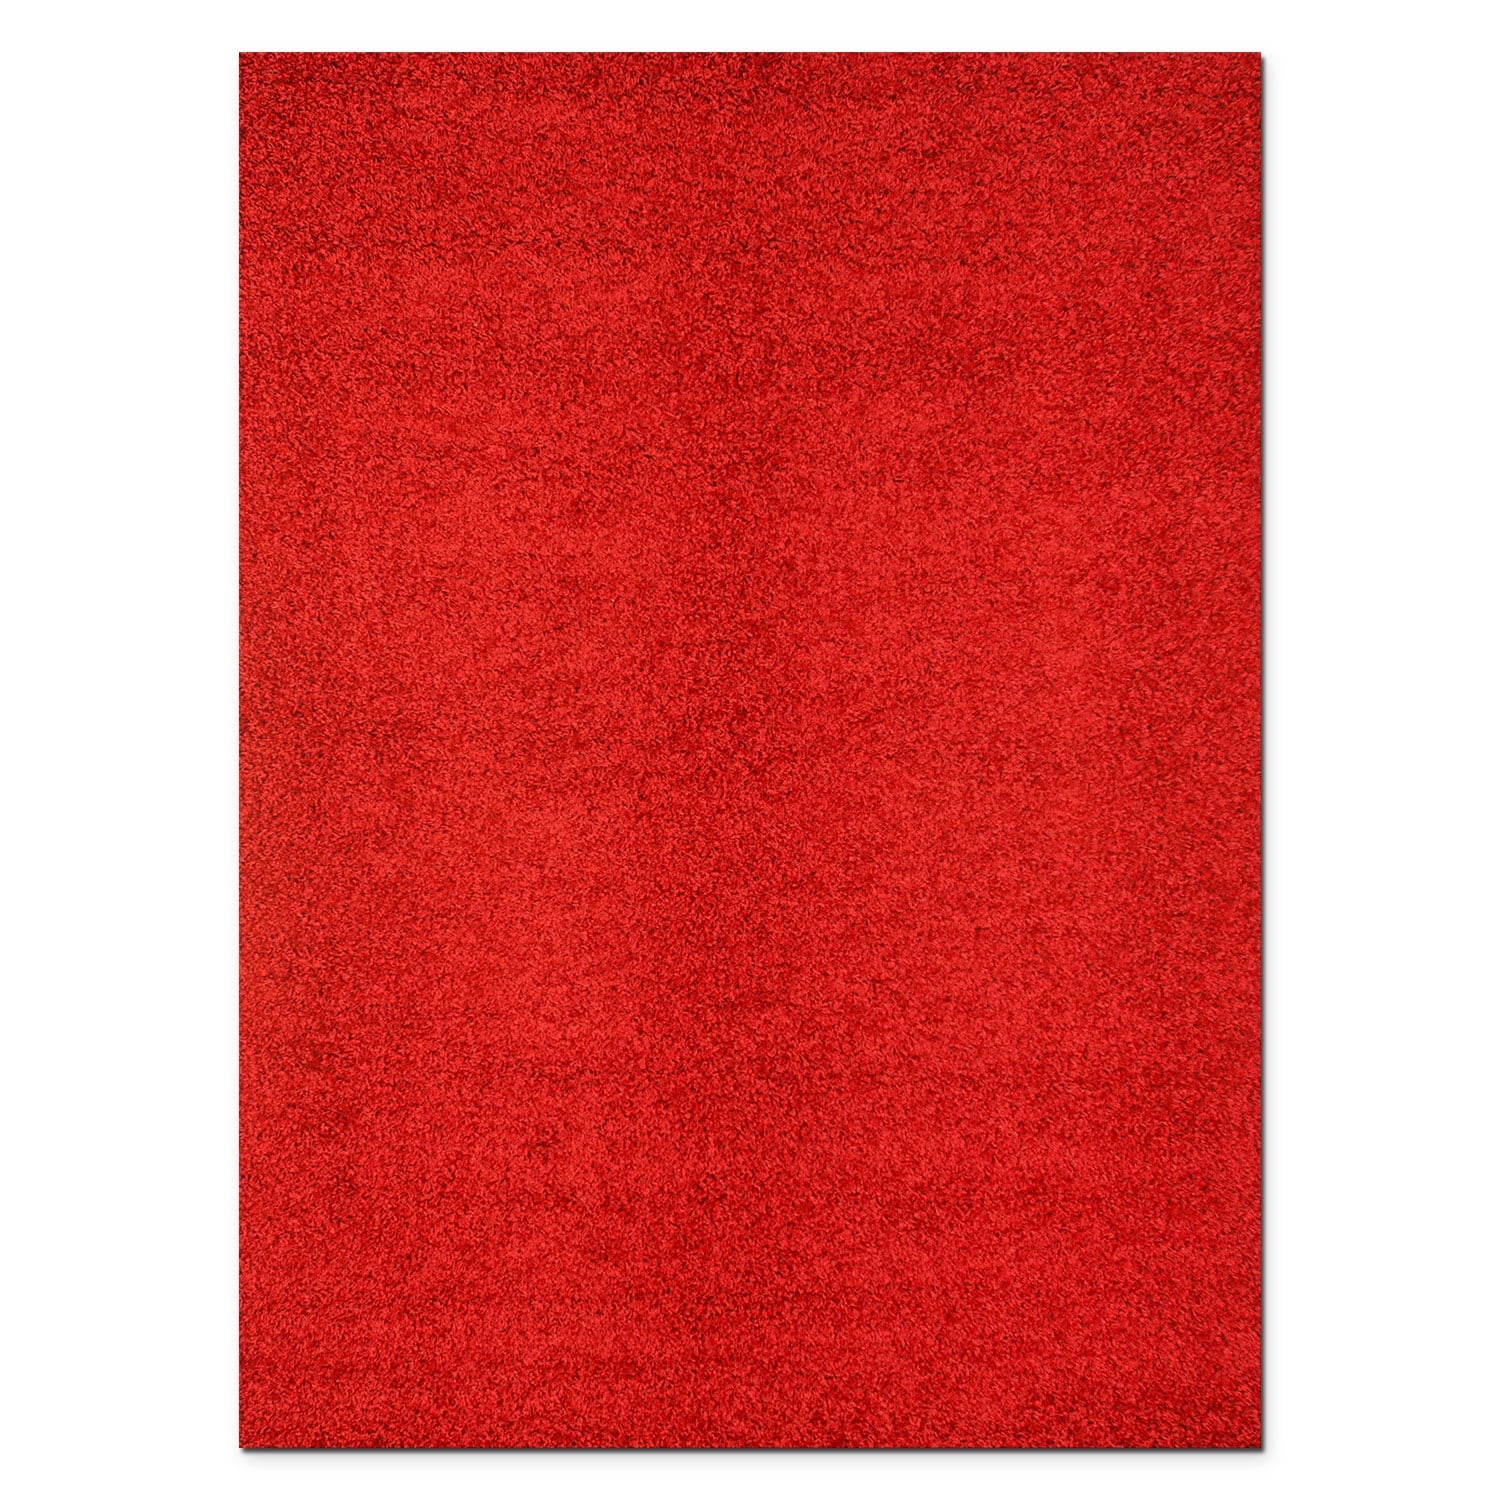 Domino Red Shag Area Rug (5' x 8')